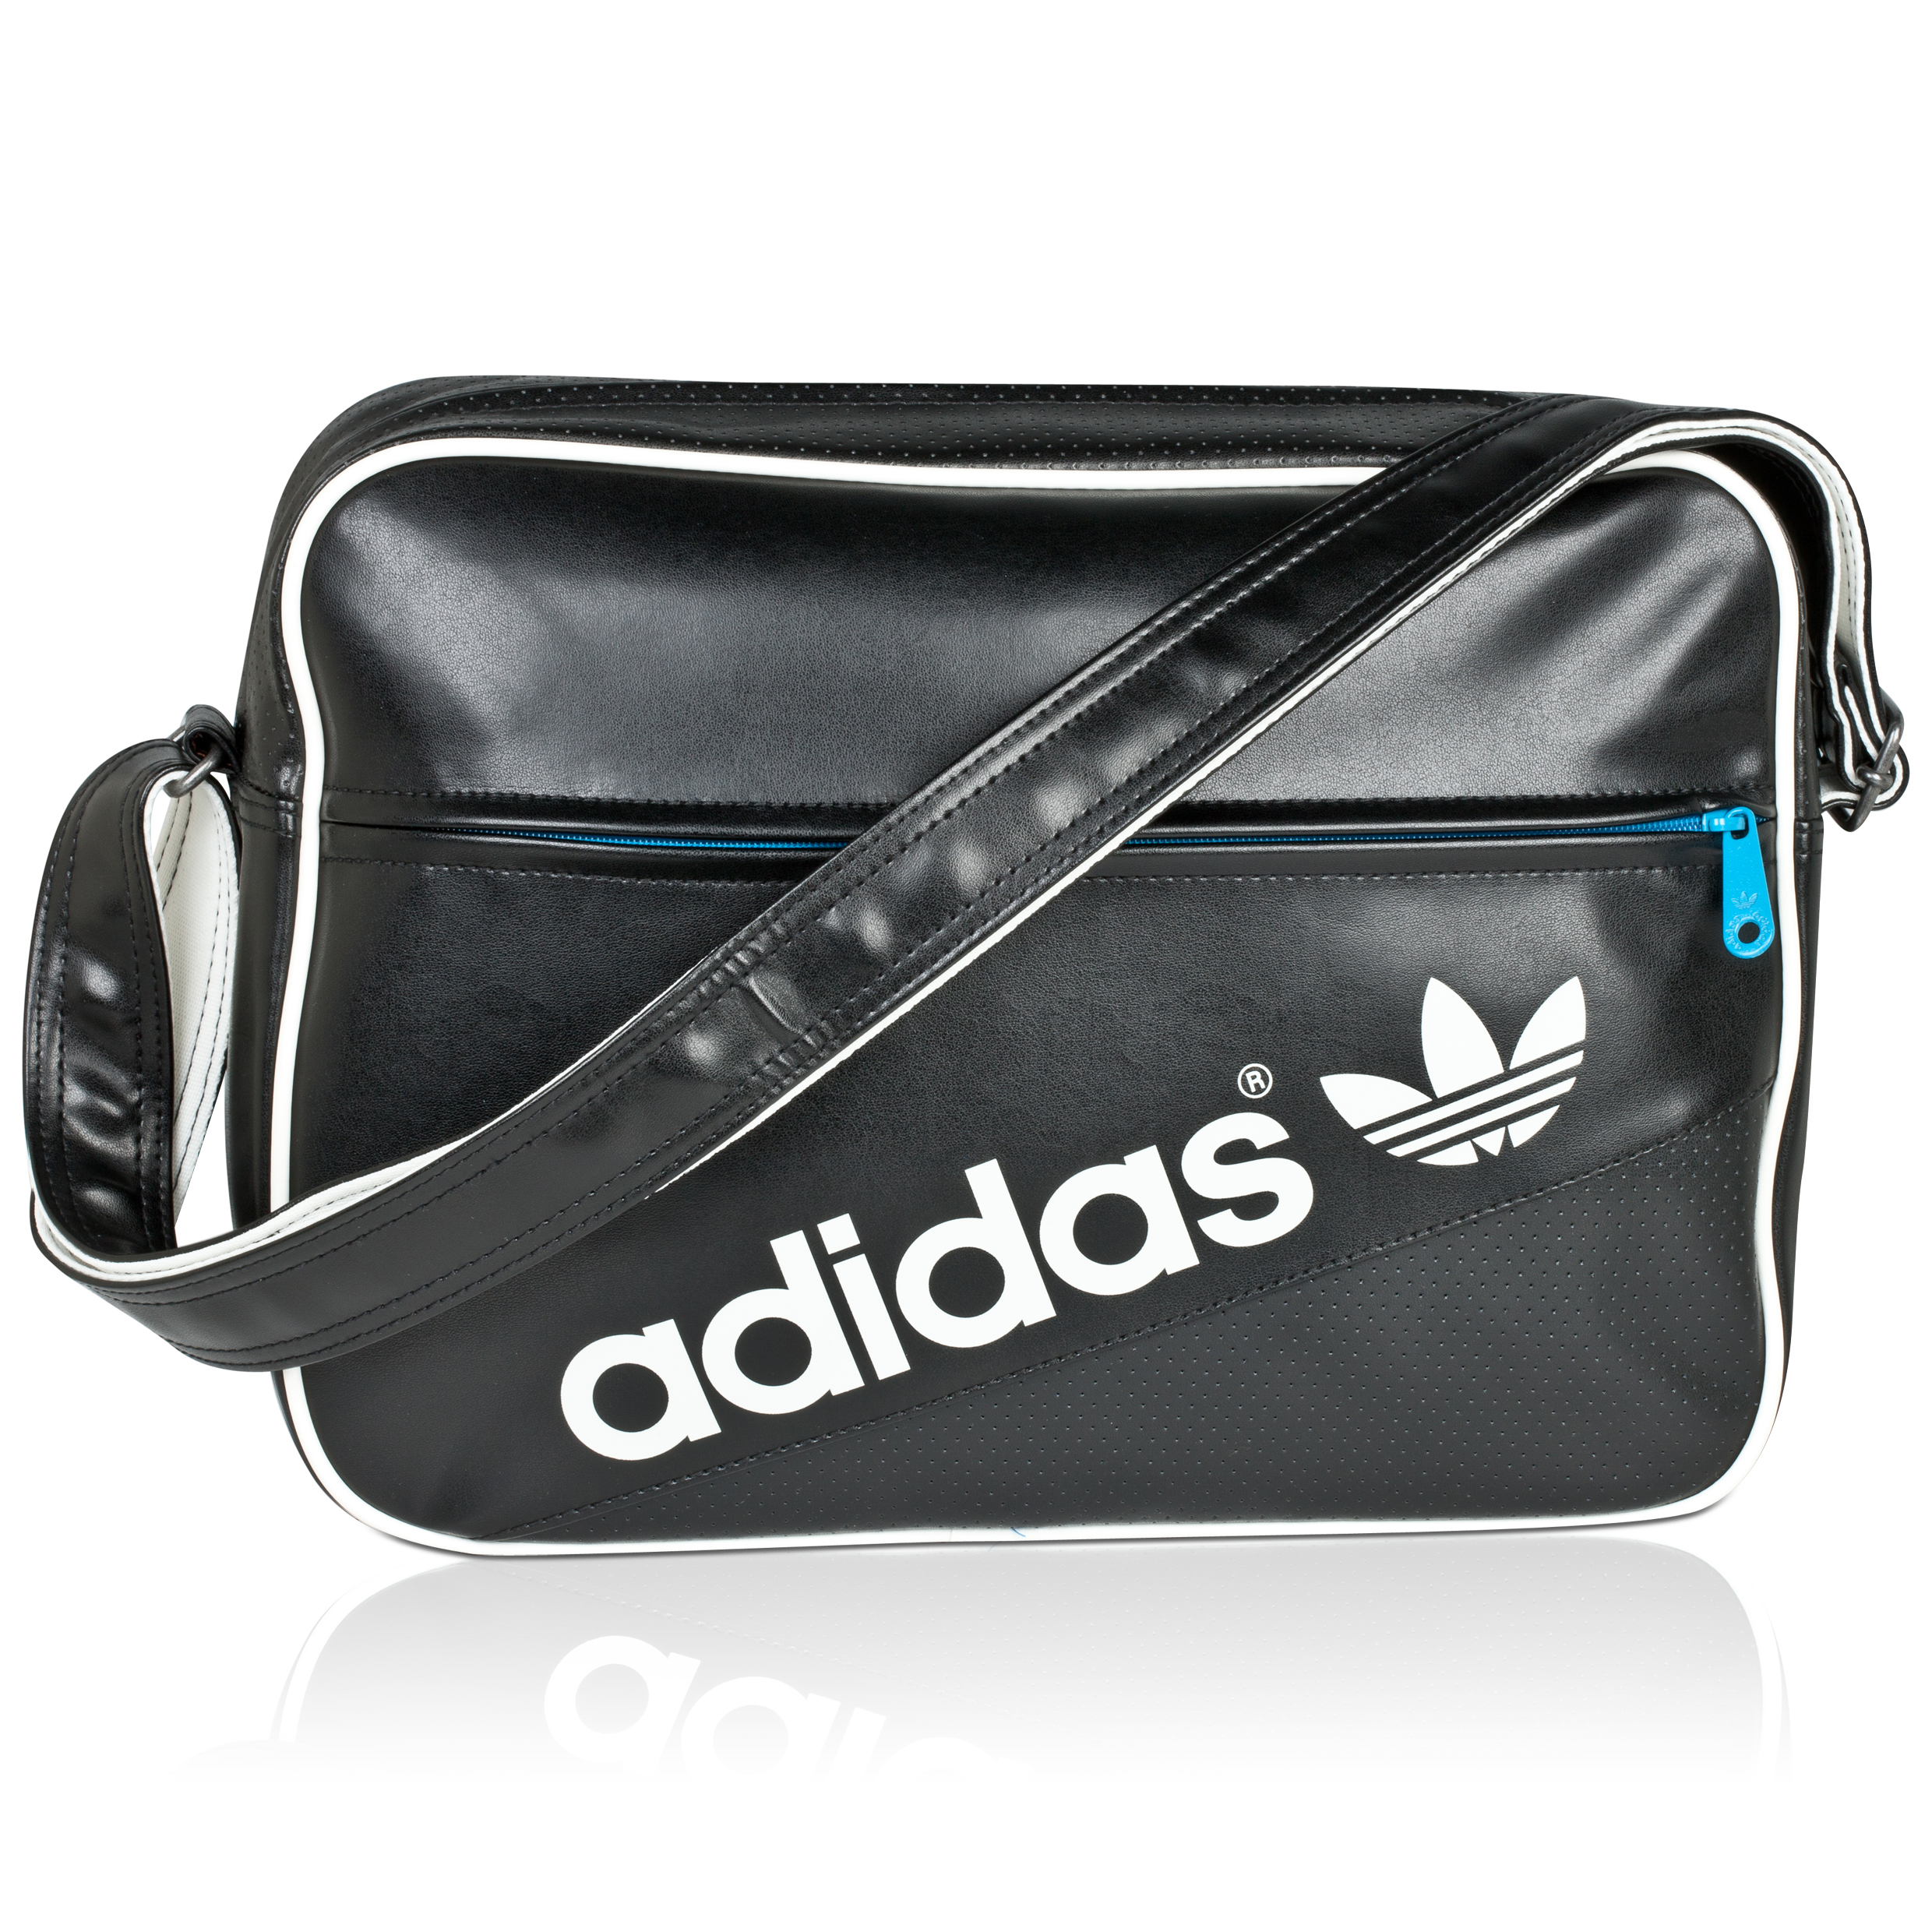 Originals Perf Airline Bag - Black/White/Turquoise